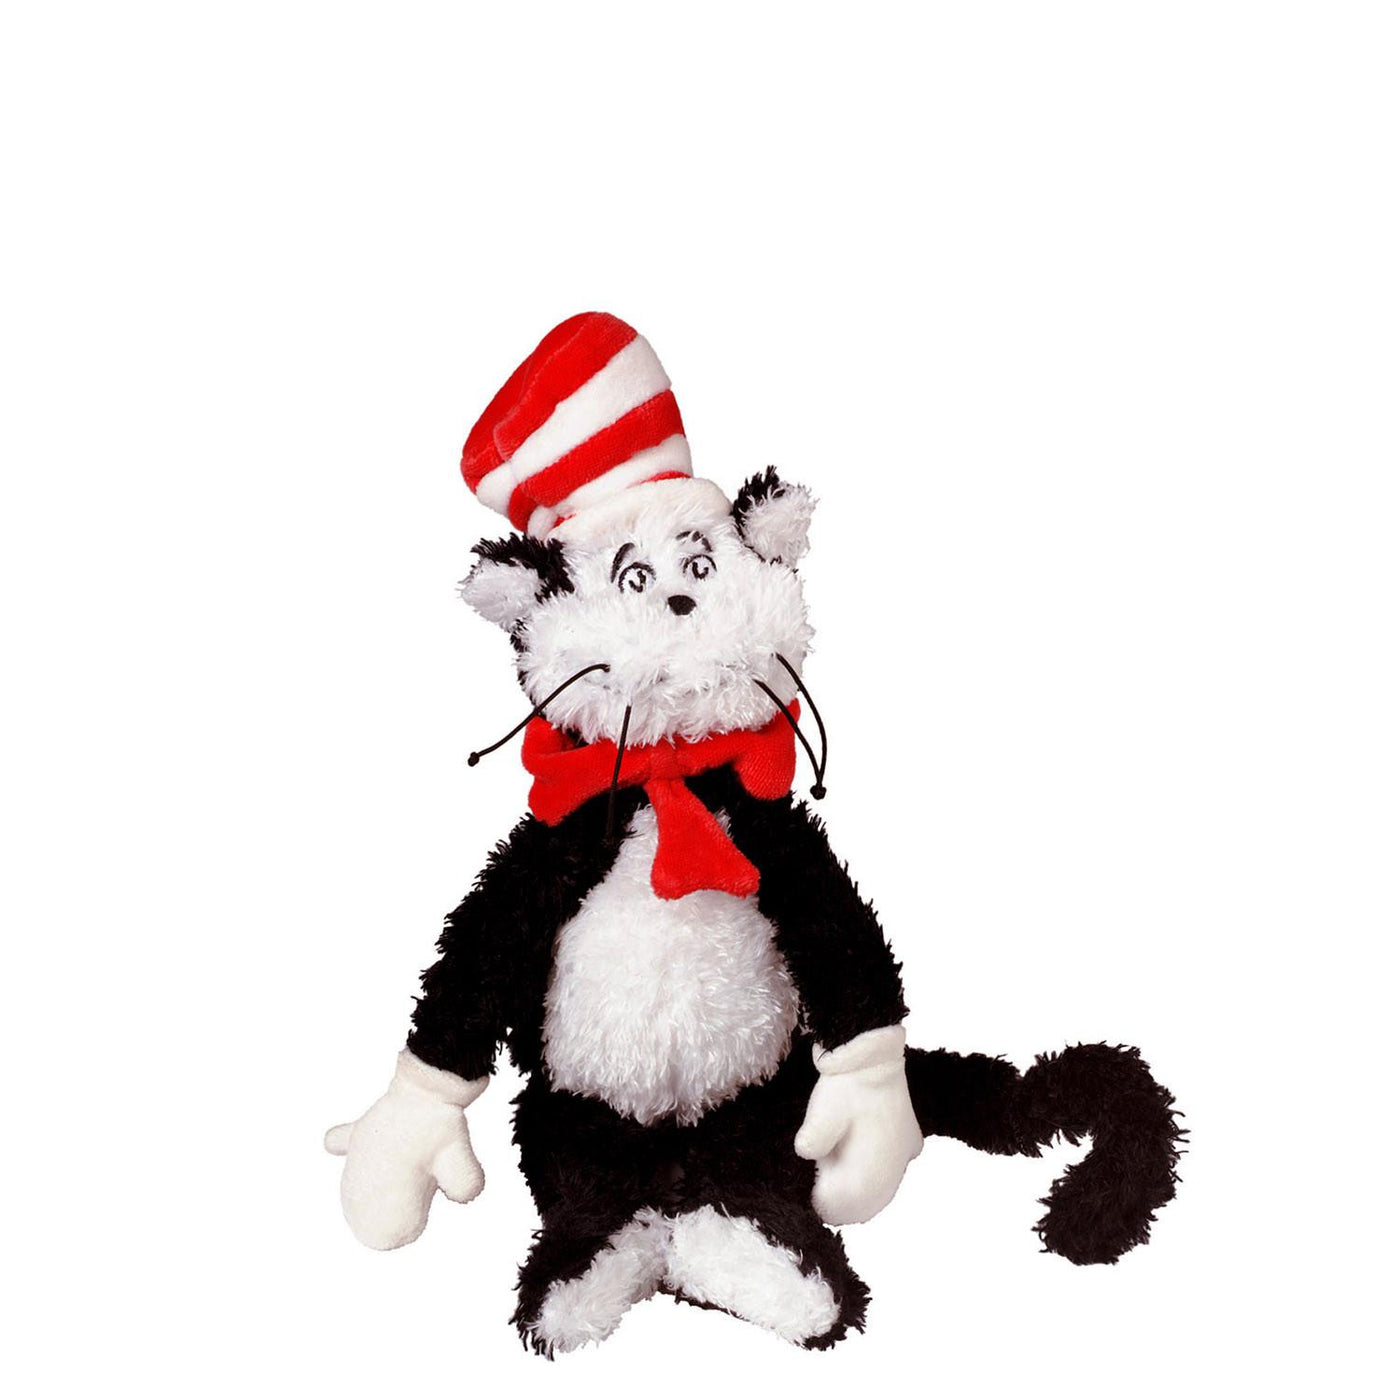 Dr. Seuss THE CAT IN THE HAT Small - Manhattan Toy